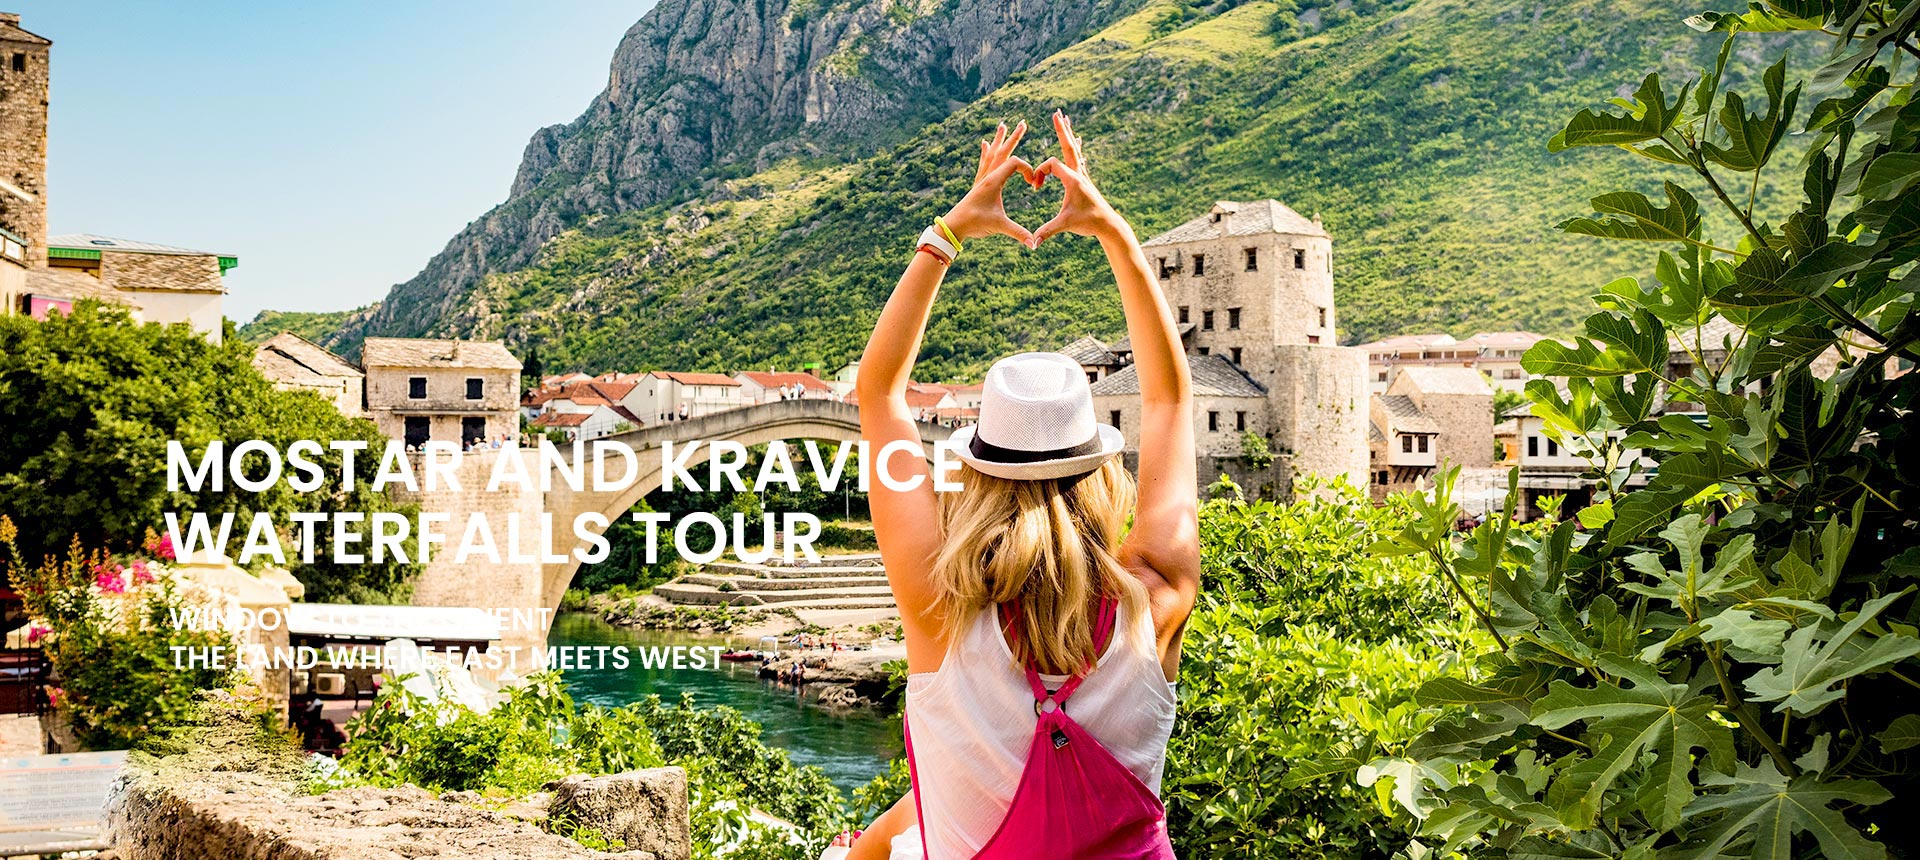 Mostar and Kravice waterfalls tour from Omiš